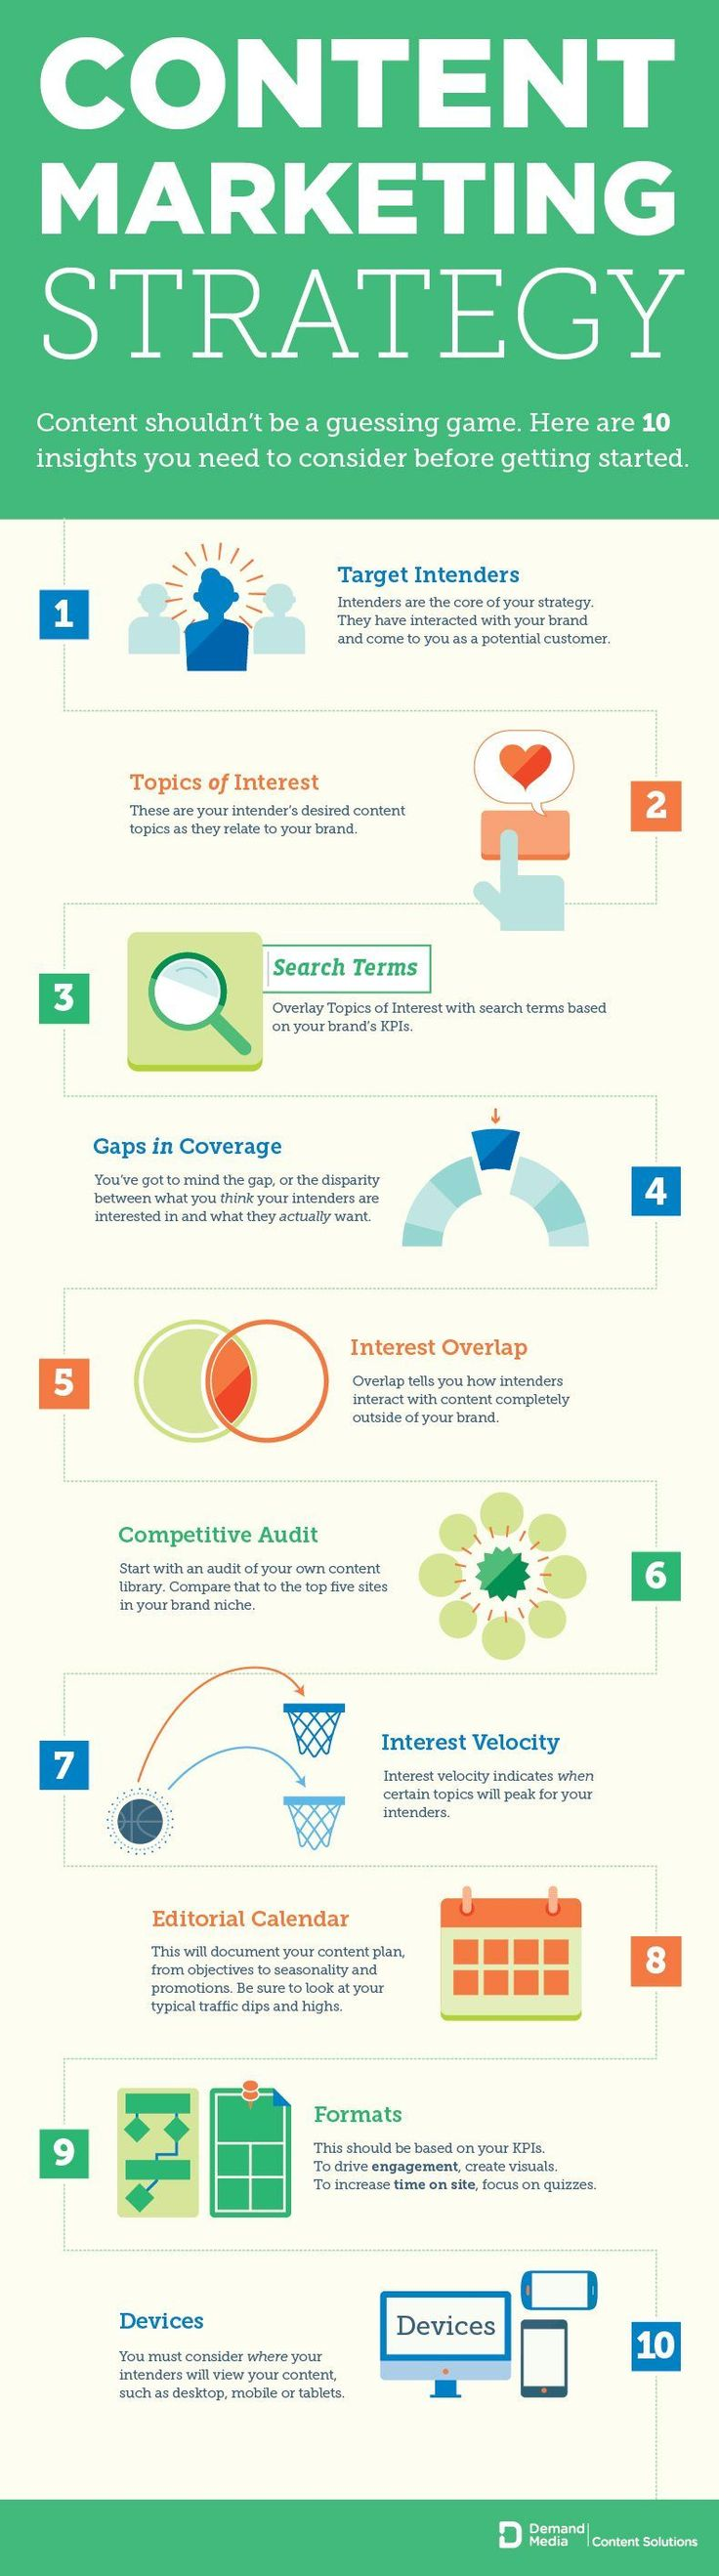 10 Aspects to Consider Before Starting Your #ContentMarketing Campaign #Infographic